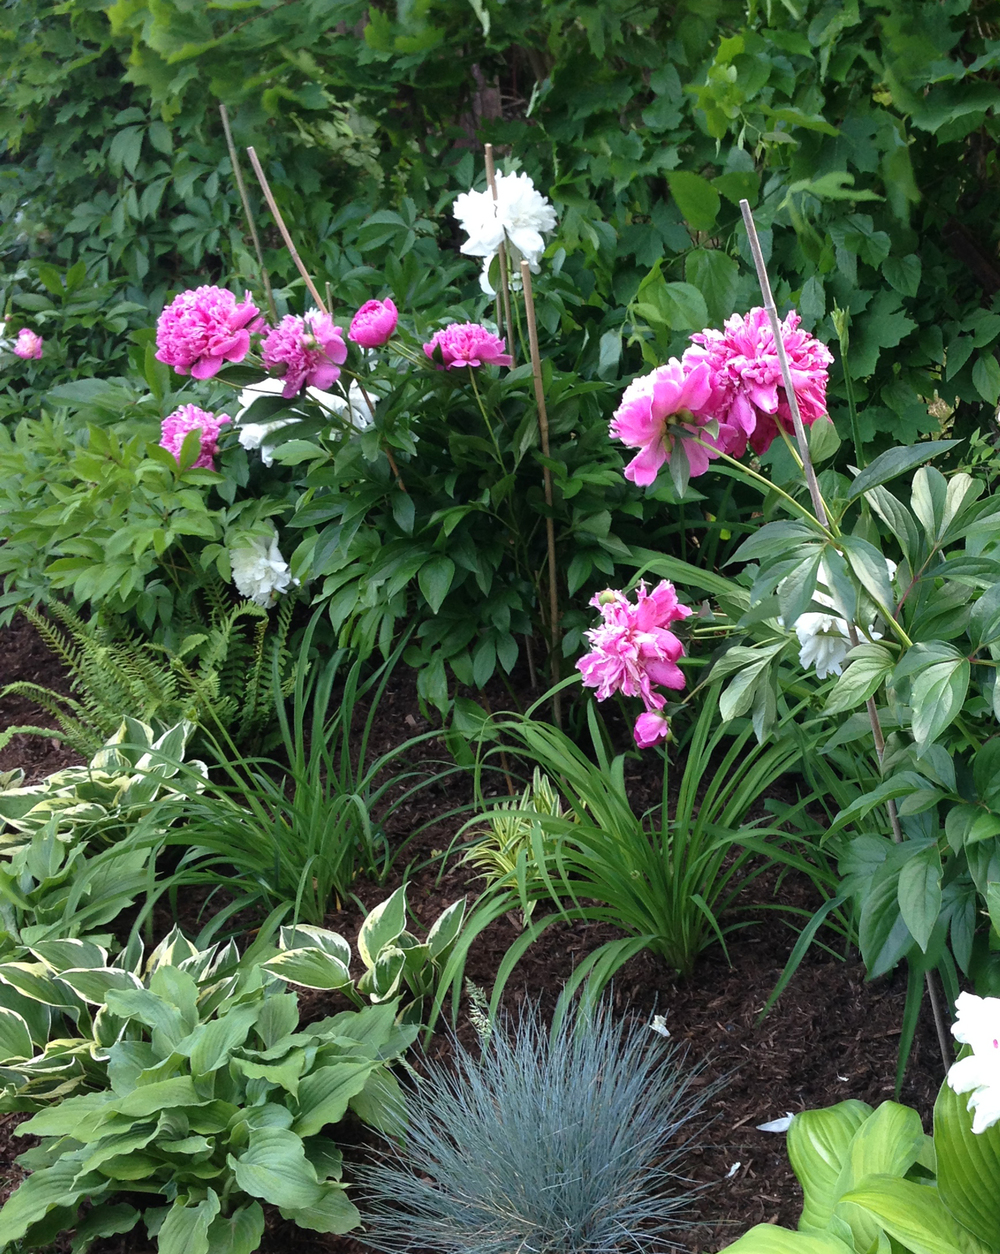 Peonies in Garden Beds